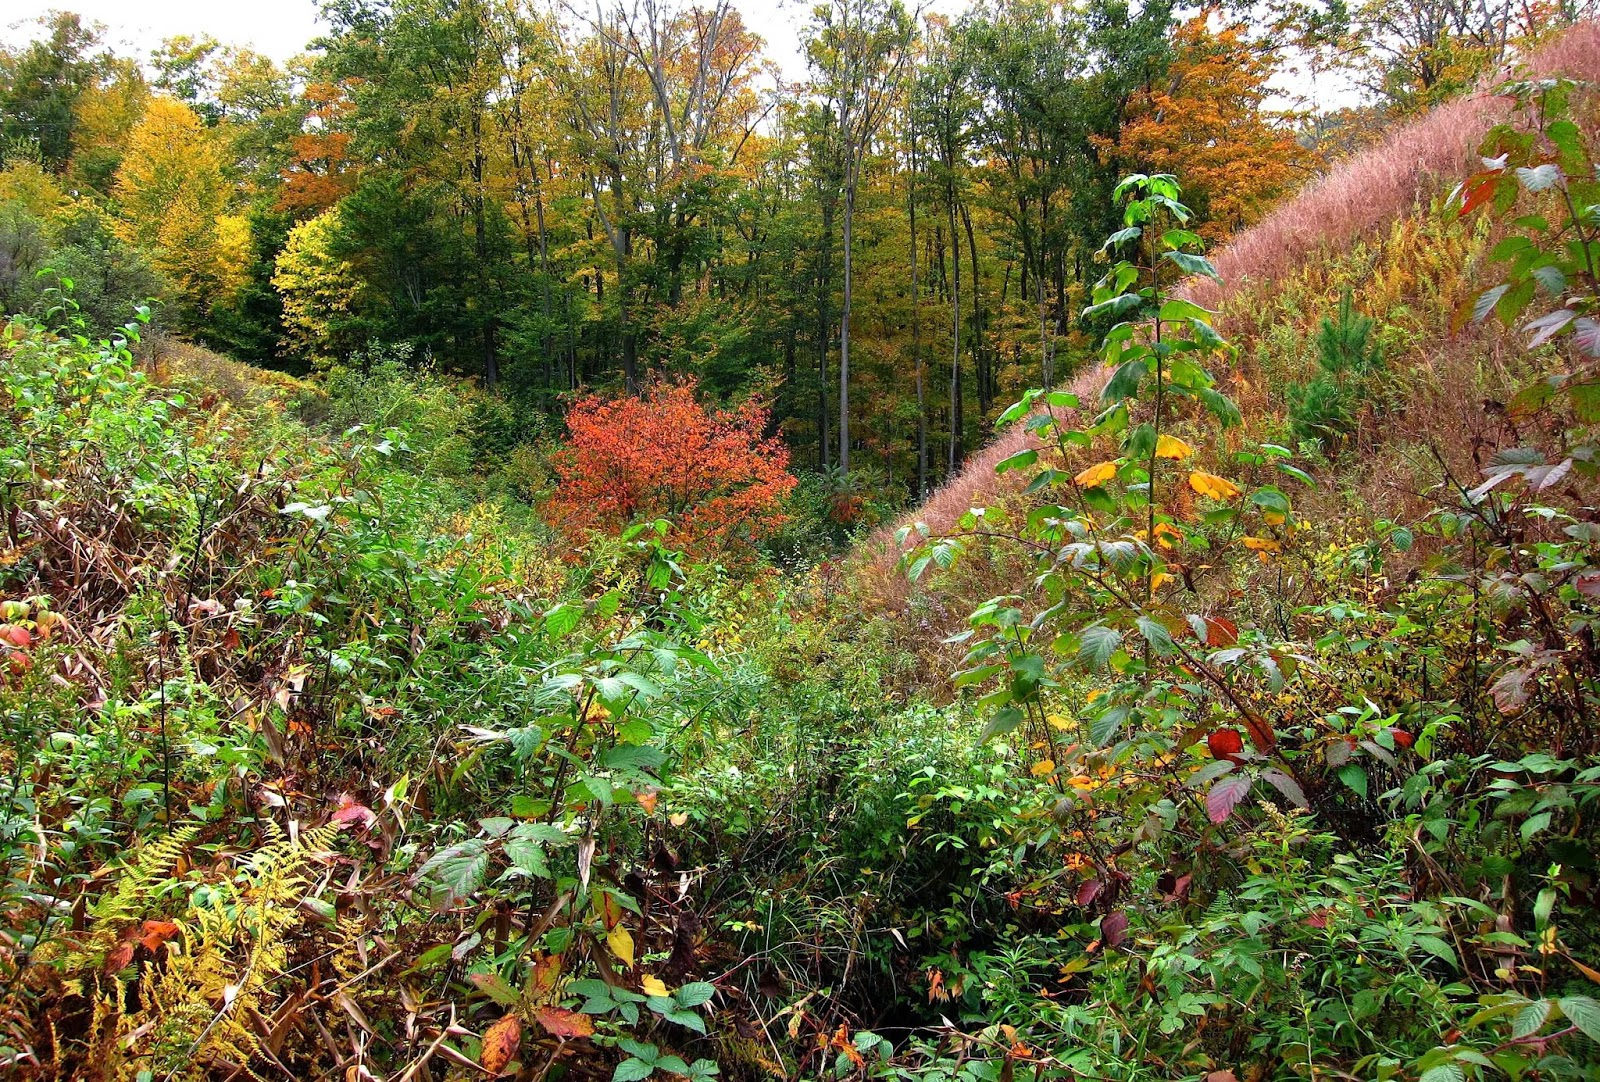 Saratoga woods and waterways: A Kaleidoscope of Autumn Color